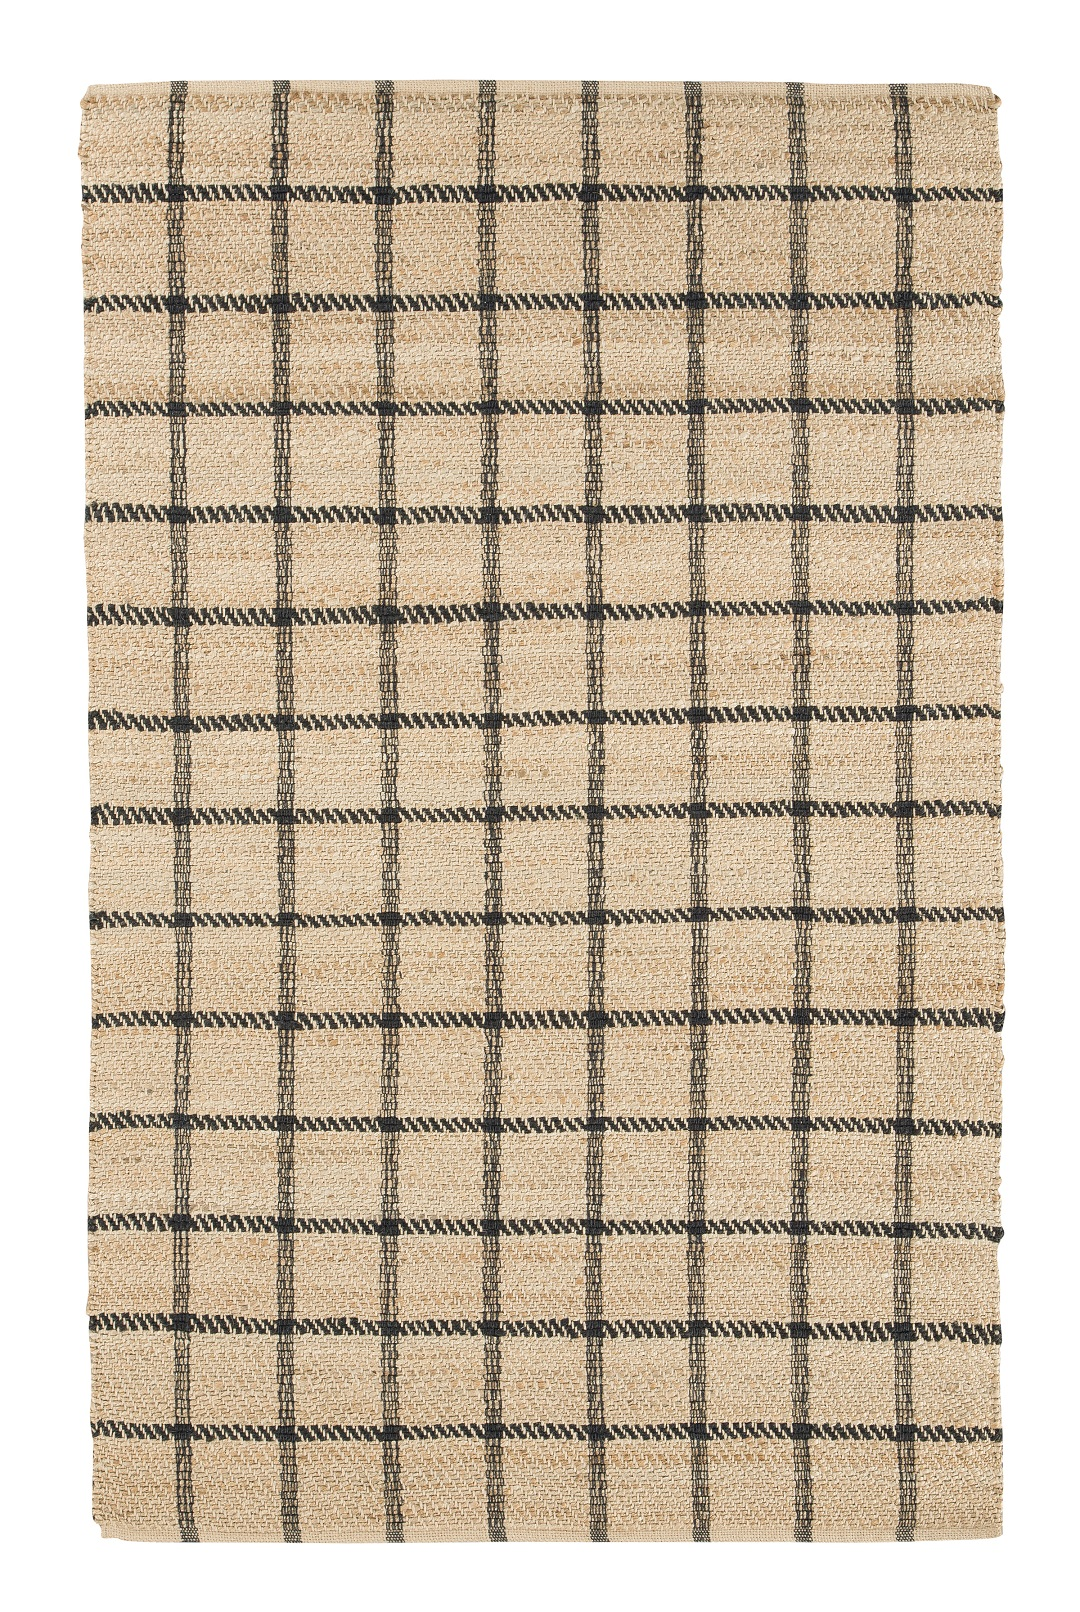 Augora Hills R400791 Large Rug Checkered Pattern Woven